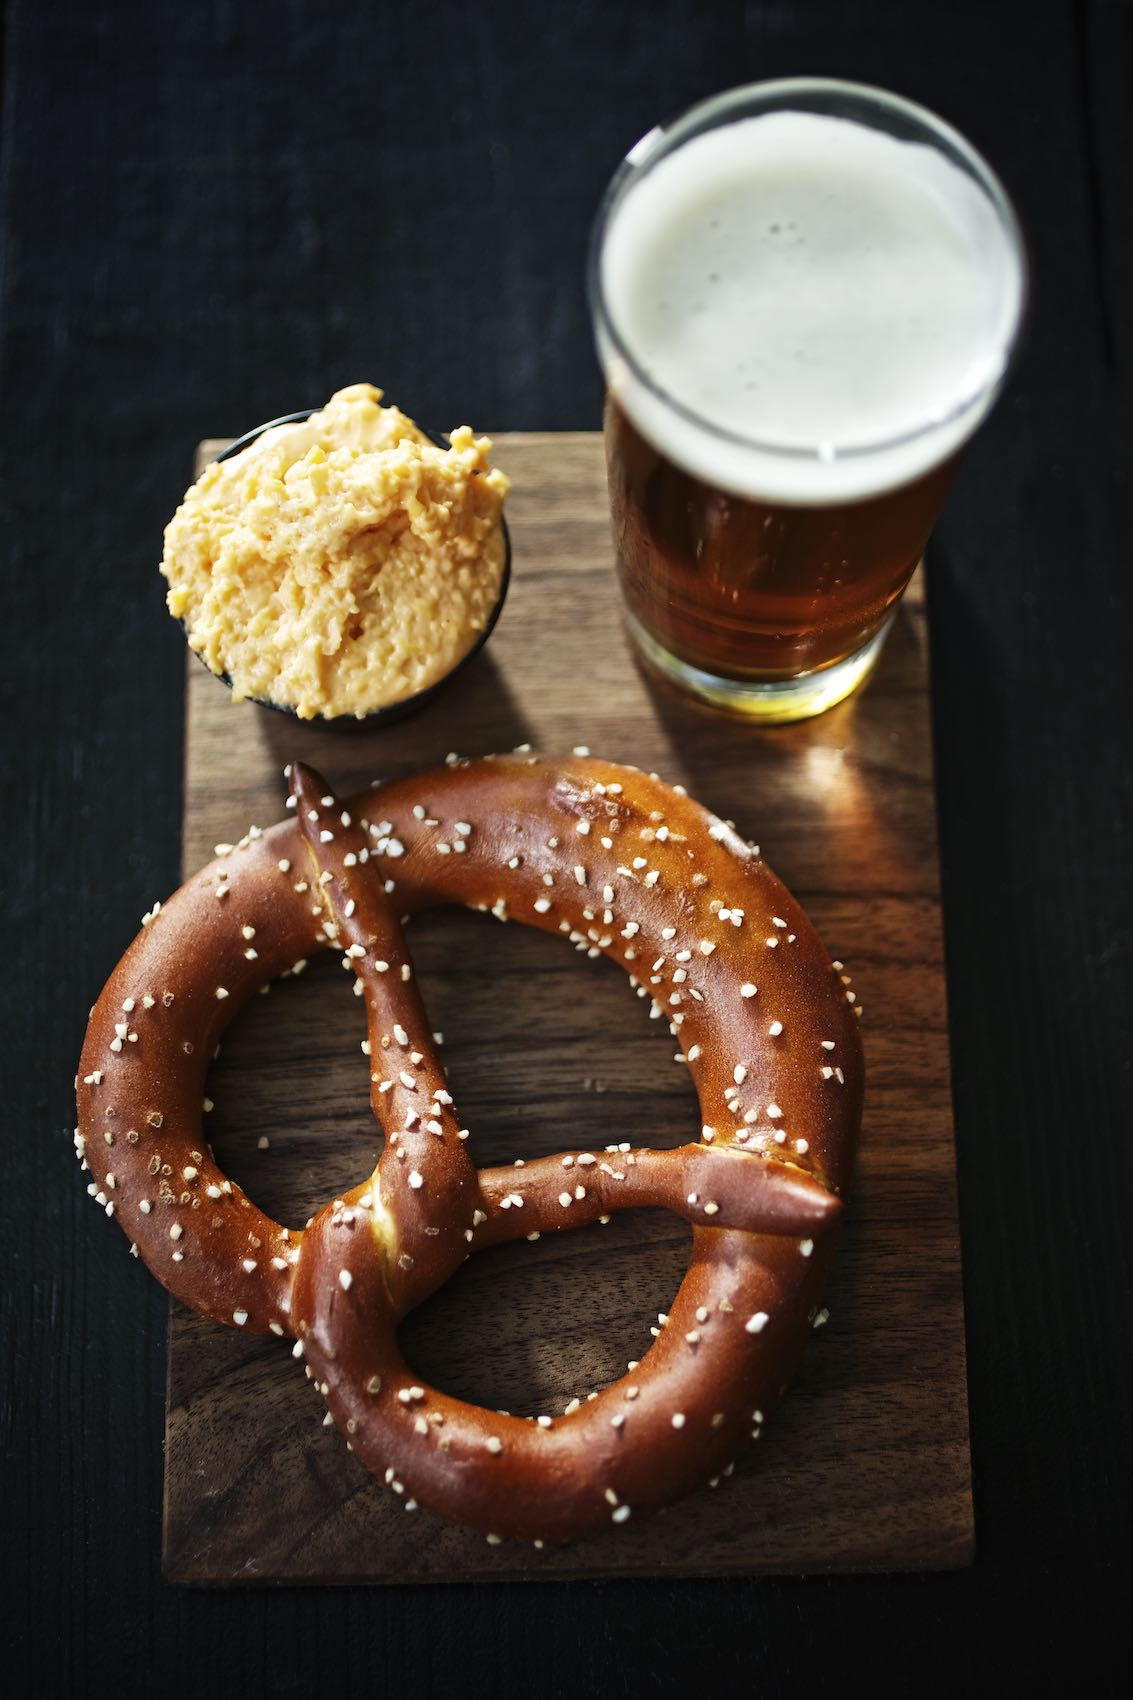 Jody Horton Photography - Baked pretzel, cheese sauce, and draft beer on a wooden board.